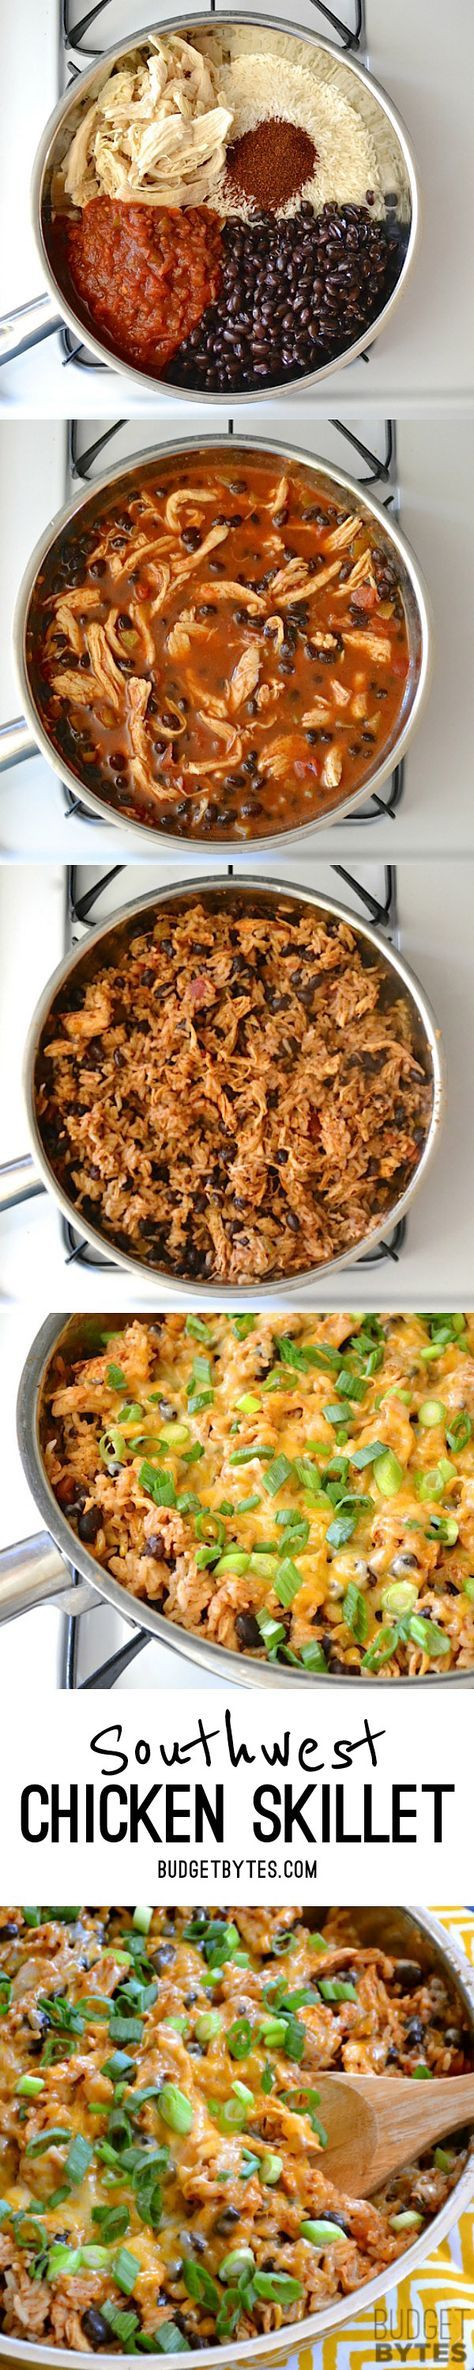 If you're looking for a quick and easy dinner, this Southwest Chicken Skillet is it! Precooked chicken makes this dinner possible in about 30 minutes. http://BudgetBytes.com